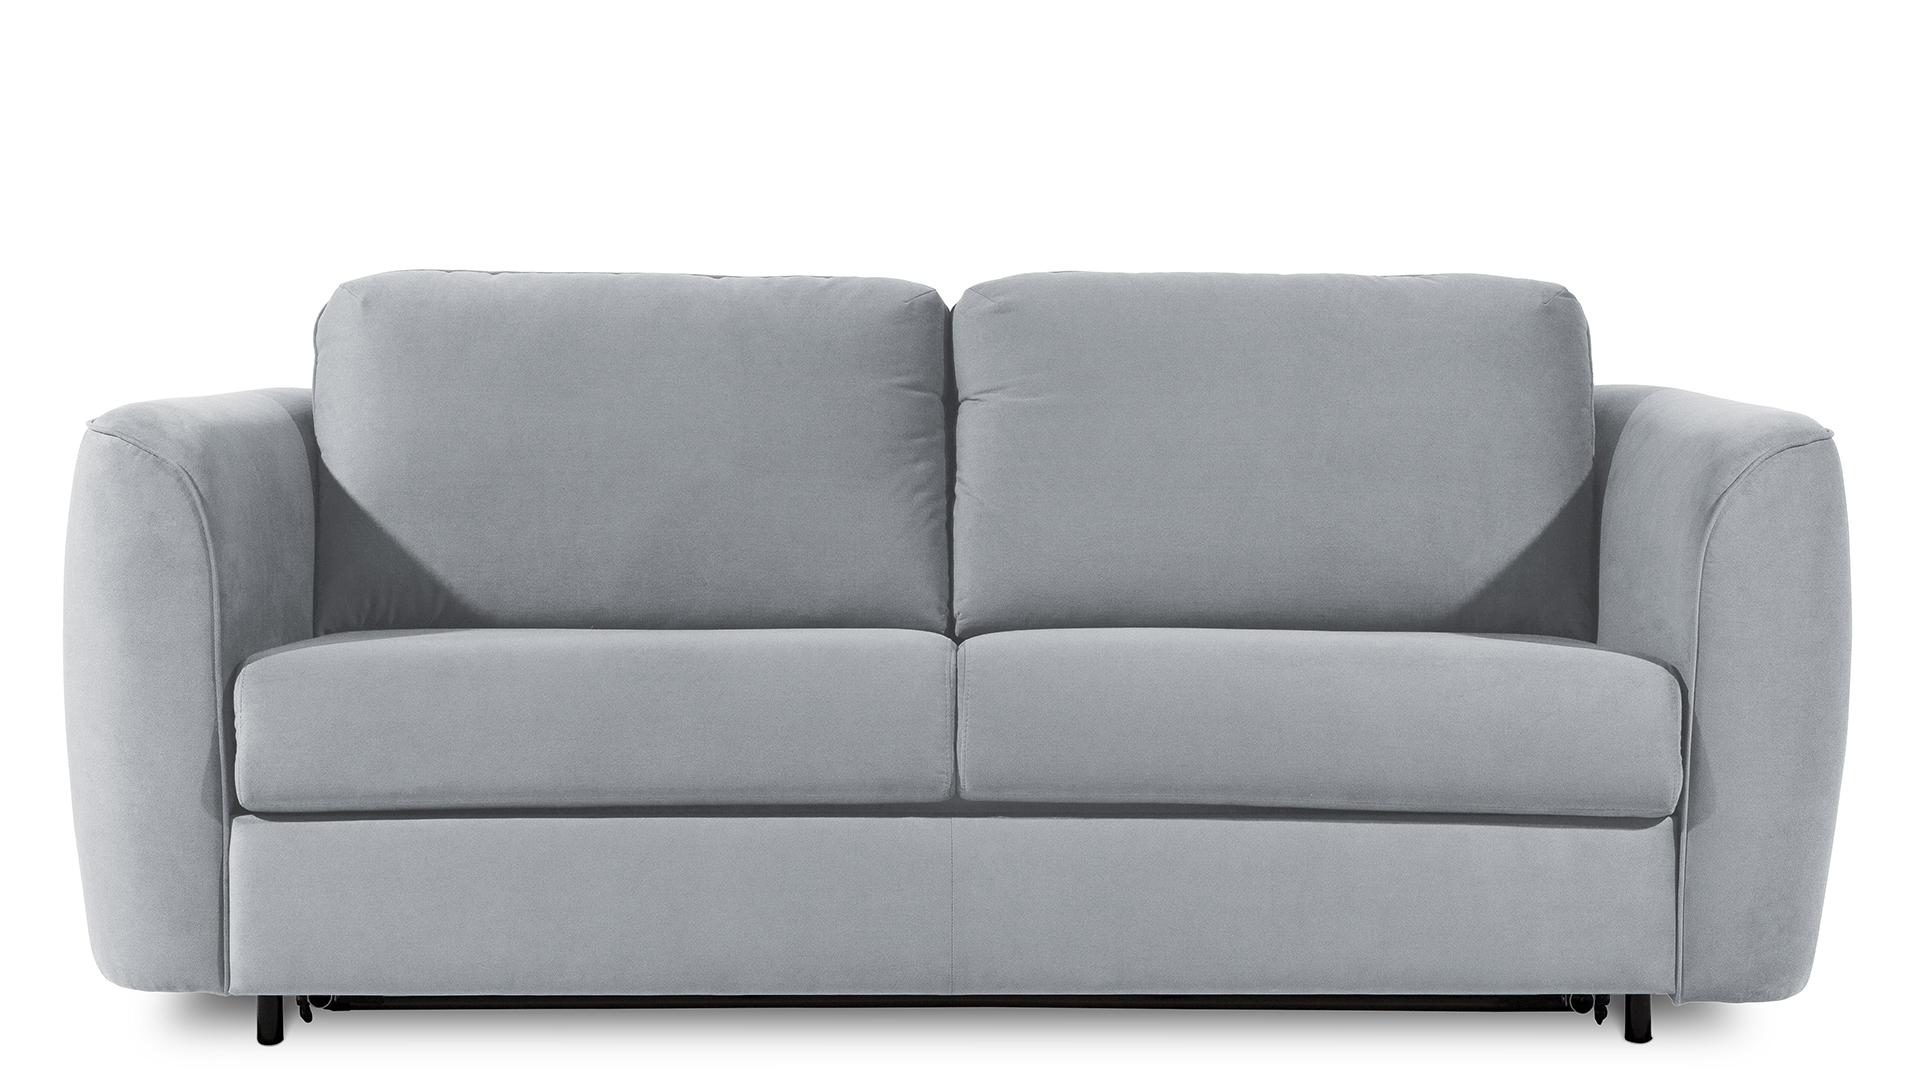 Sofa with sleeping function Cali 160